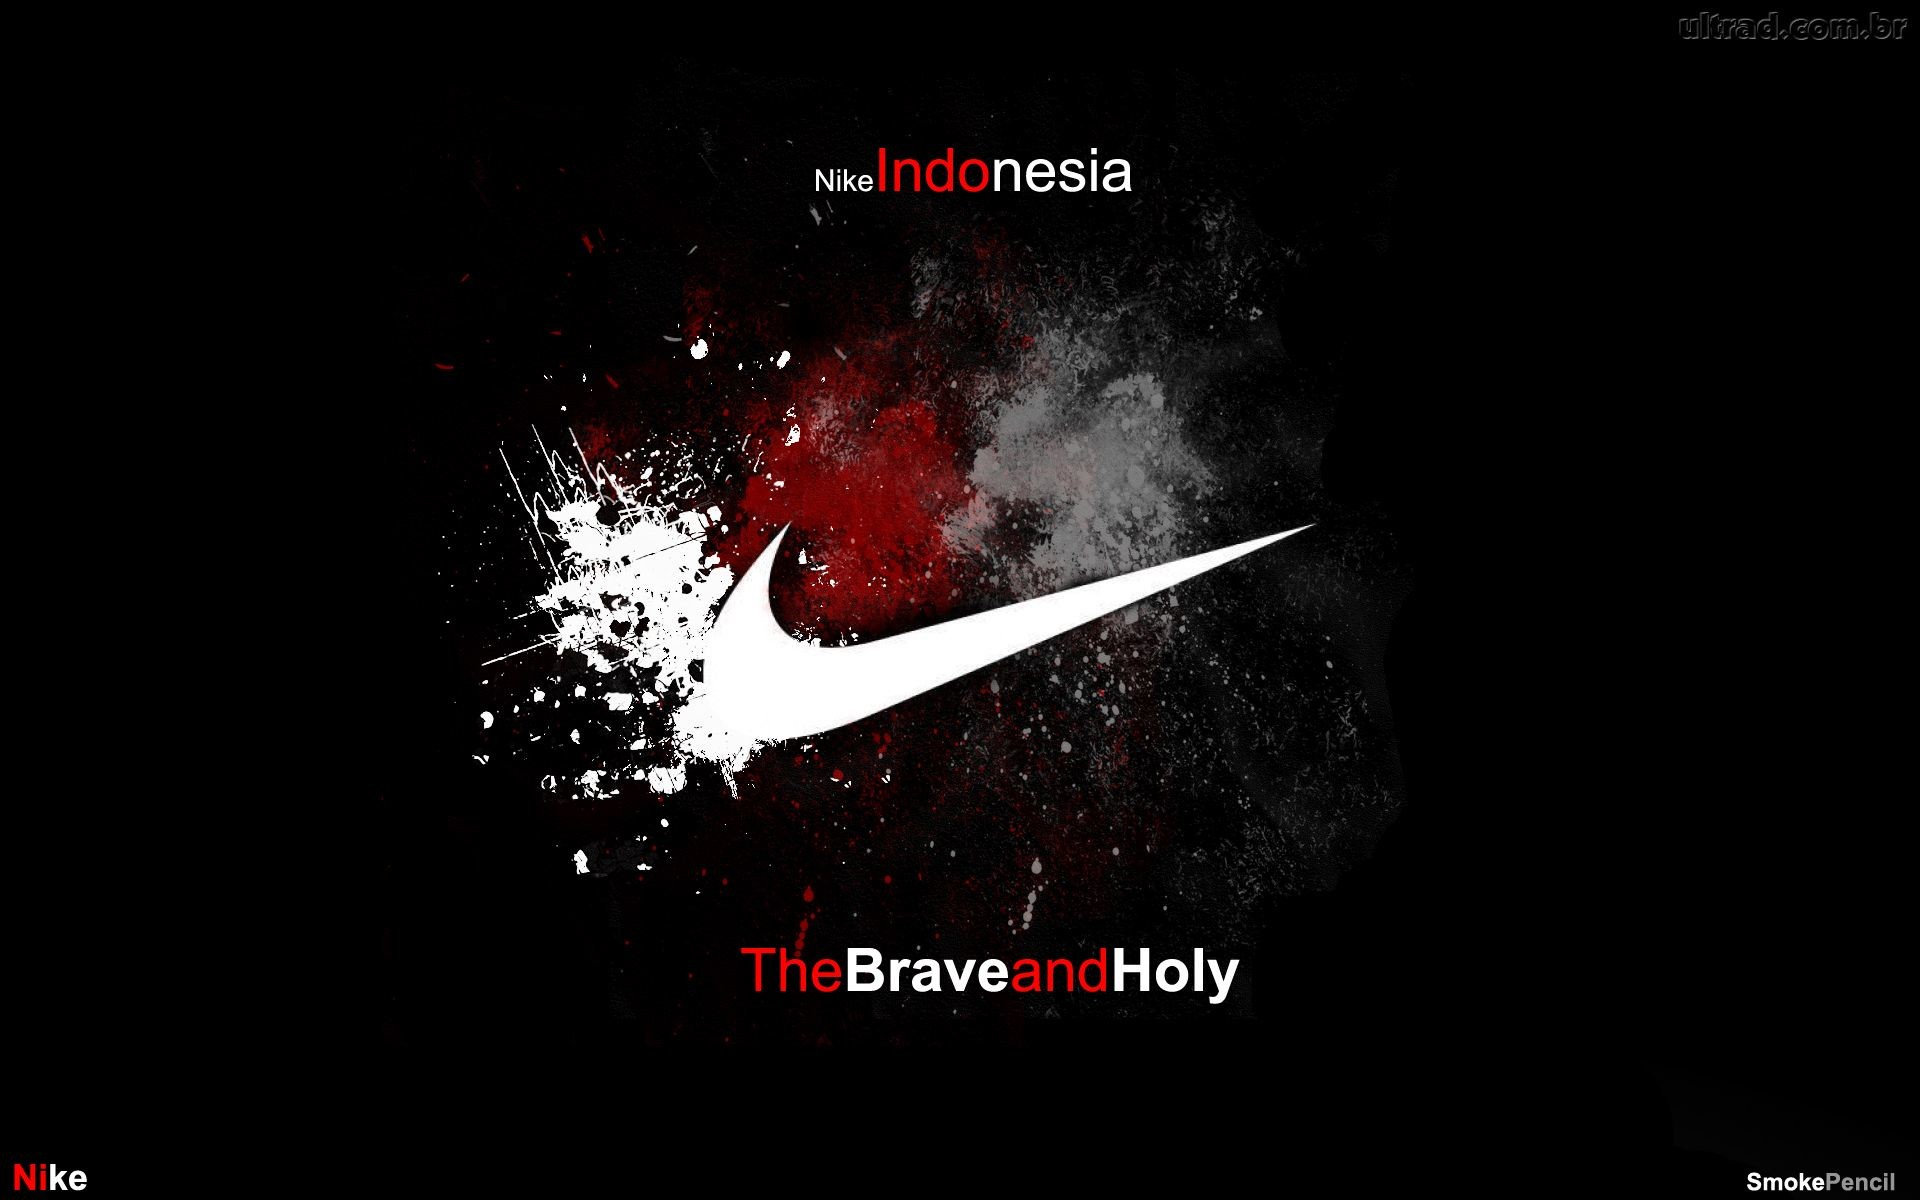 1920x1200 nike logo cool backgrounds images | Desktop Backgrounds for Free HD .